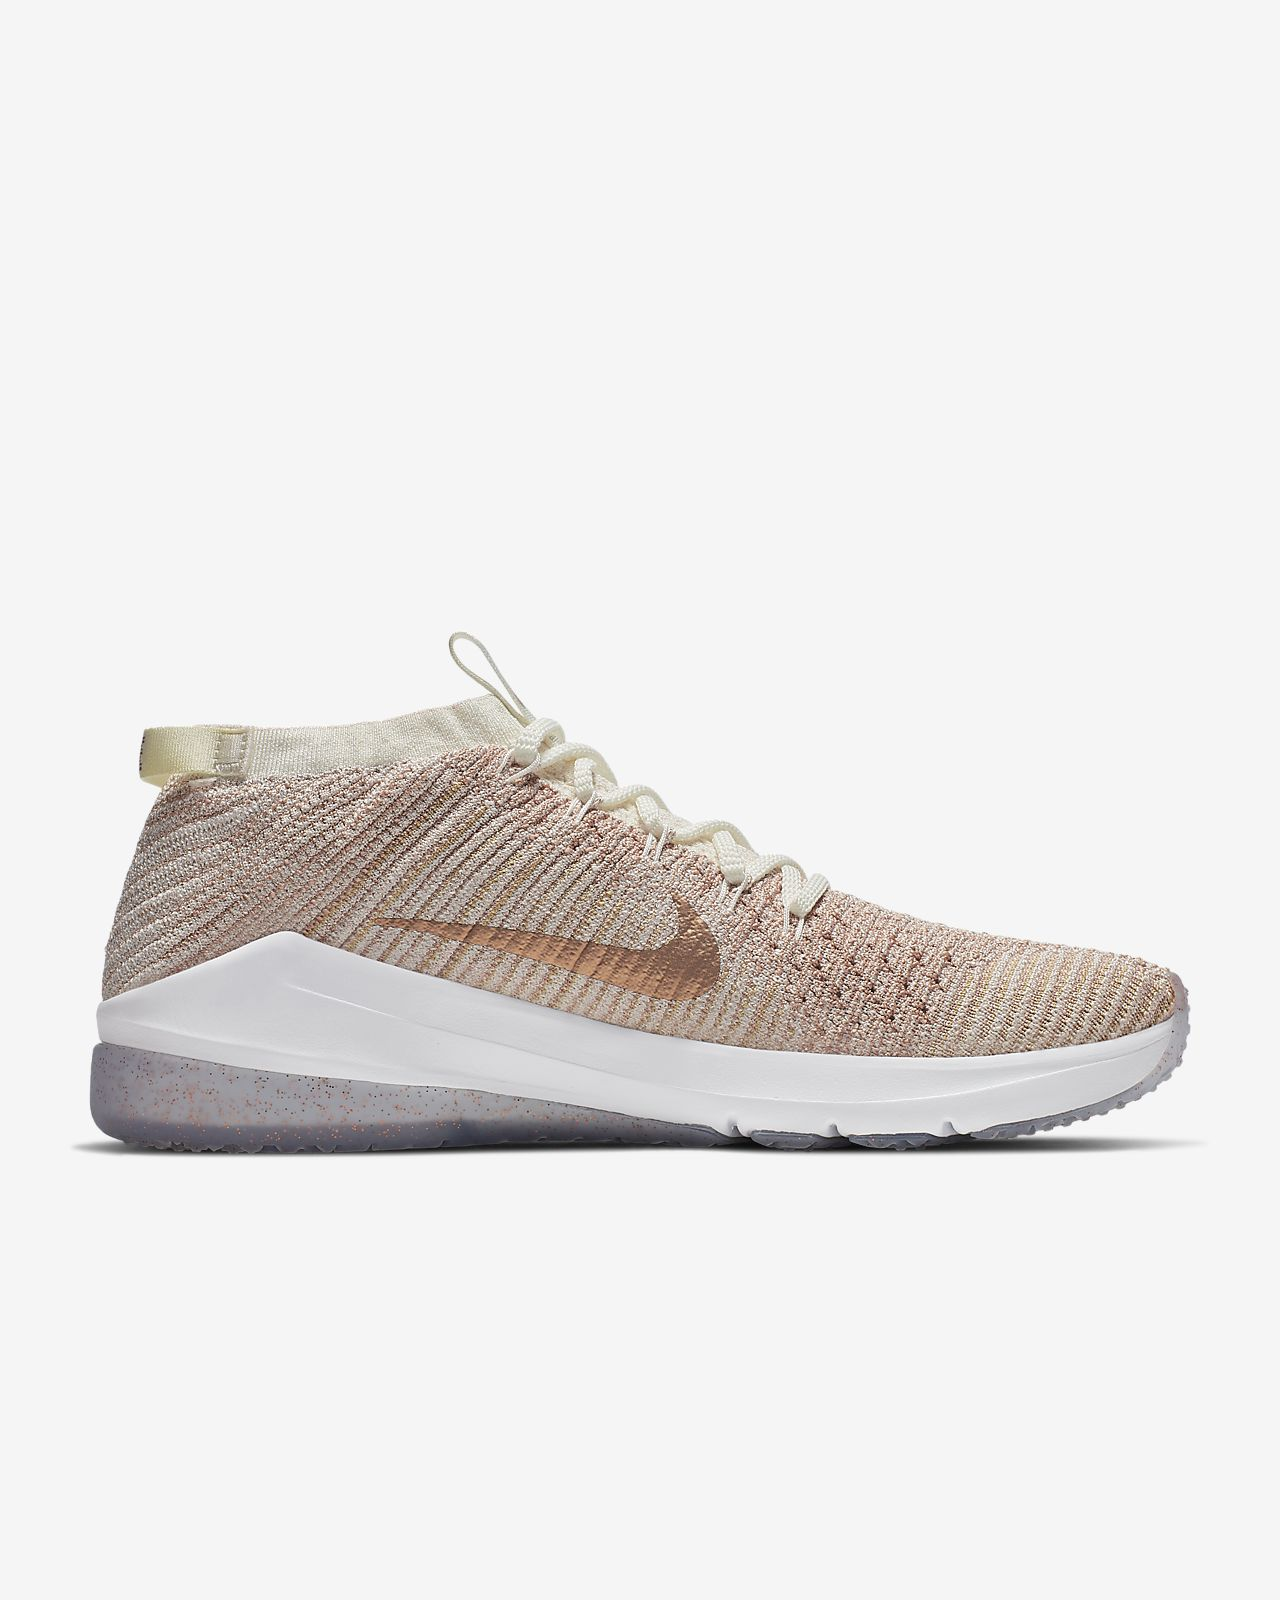 c7e1212762f5a ... Nike Air Zoom Fearless Flyknit 2 Metallic Women's Training Shoe